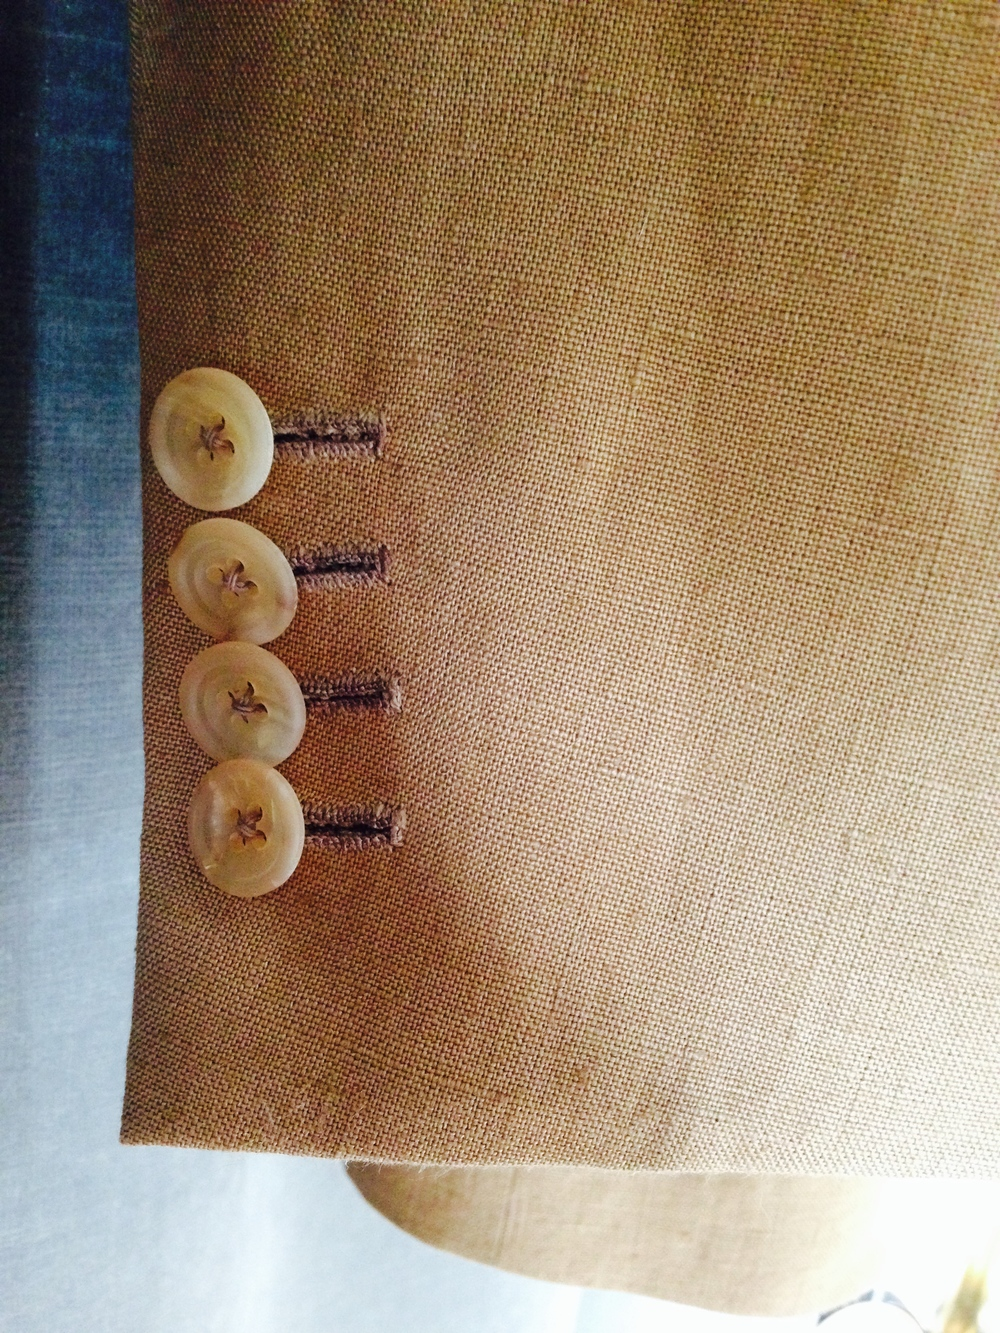 Fairly plain matte horn buttons rein in linen--a cloth know for having plenty of character of its own.